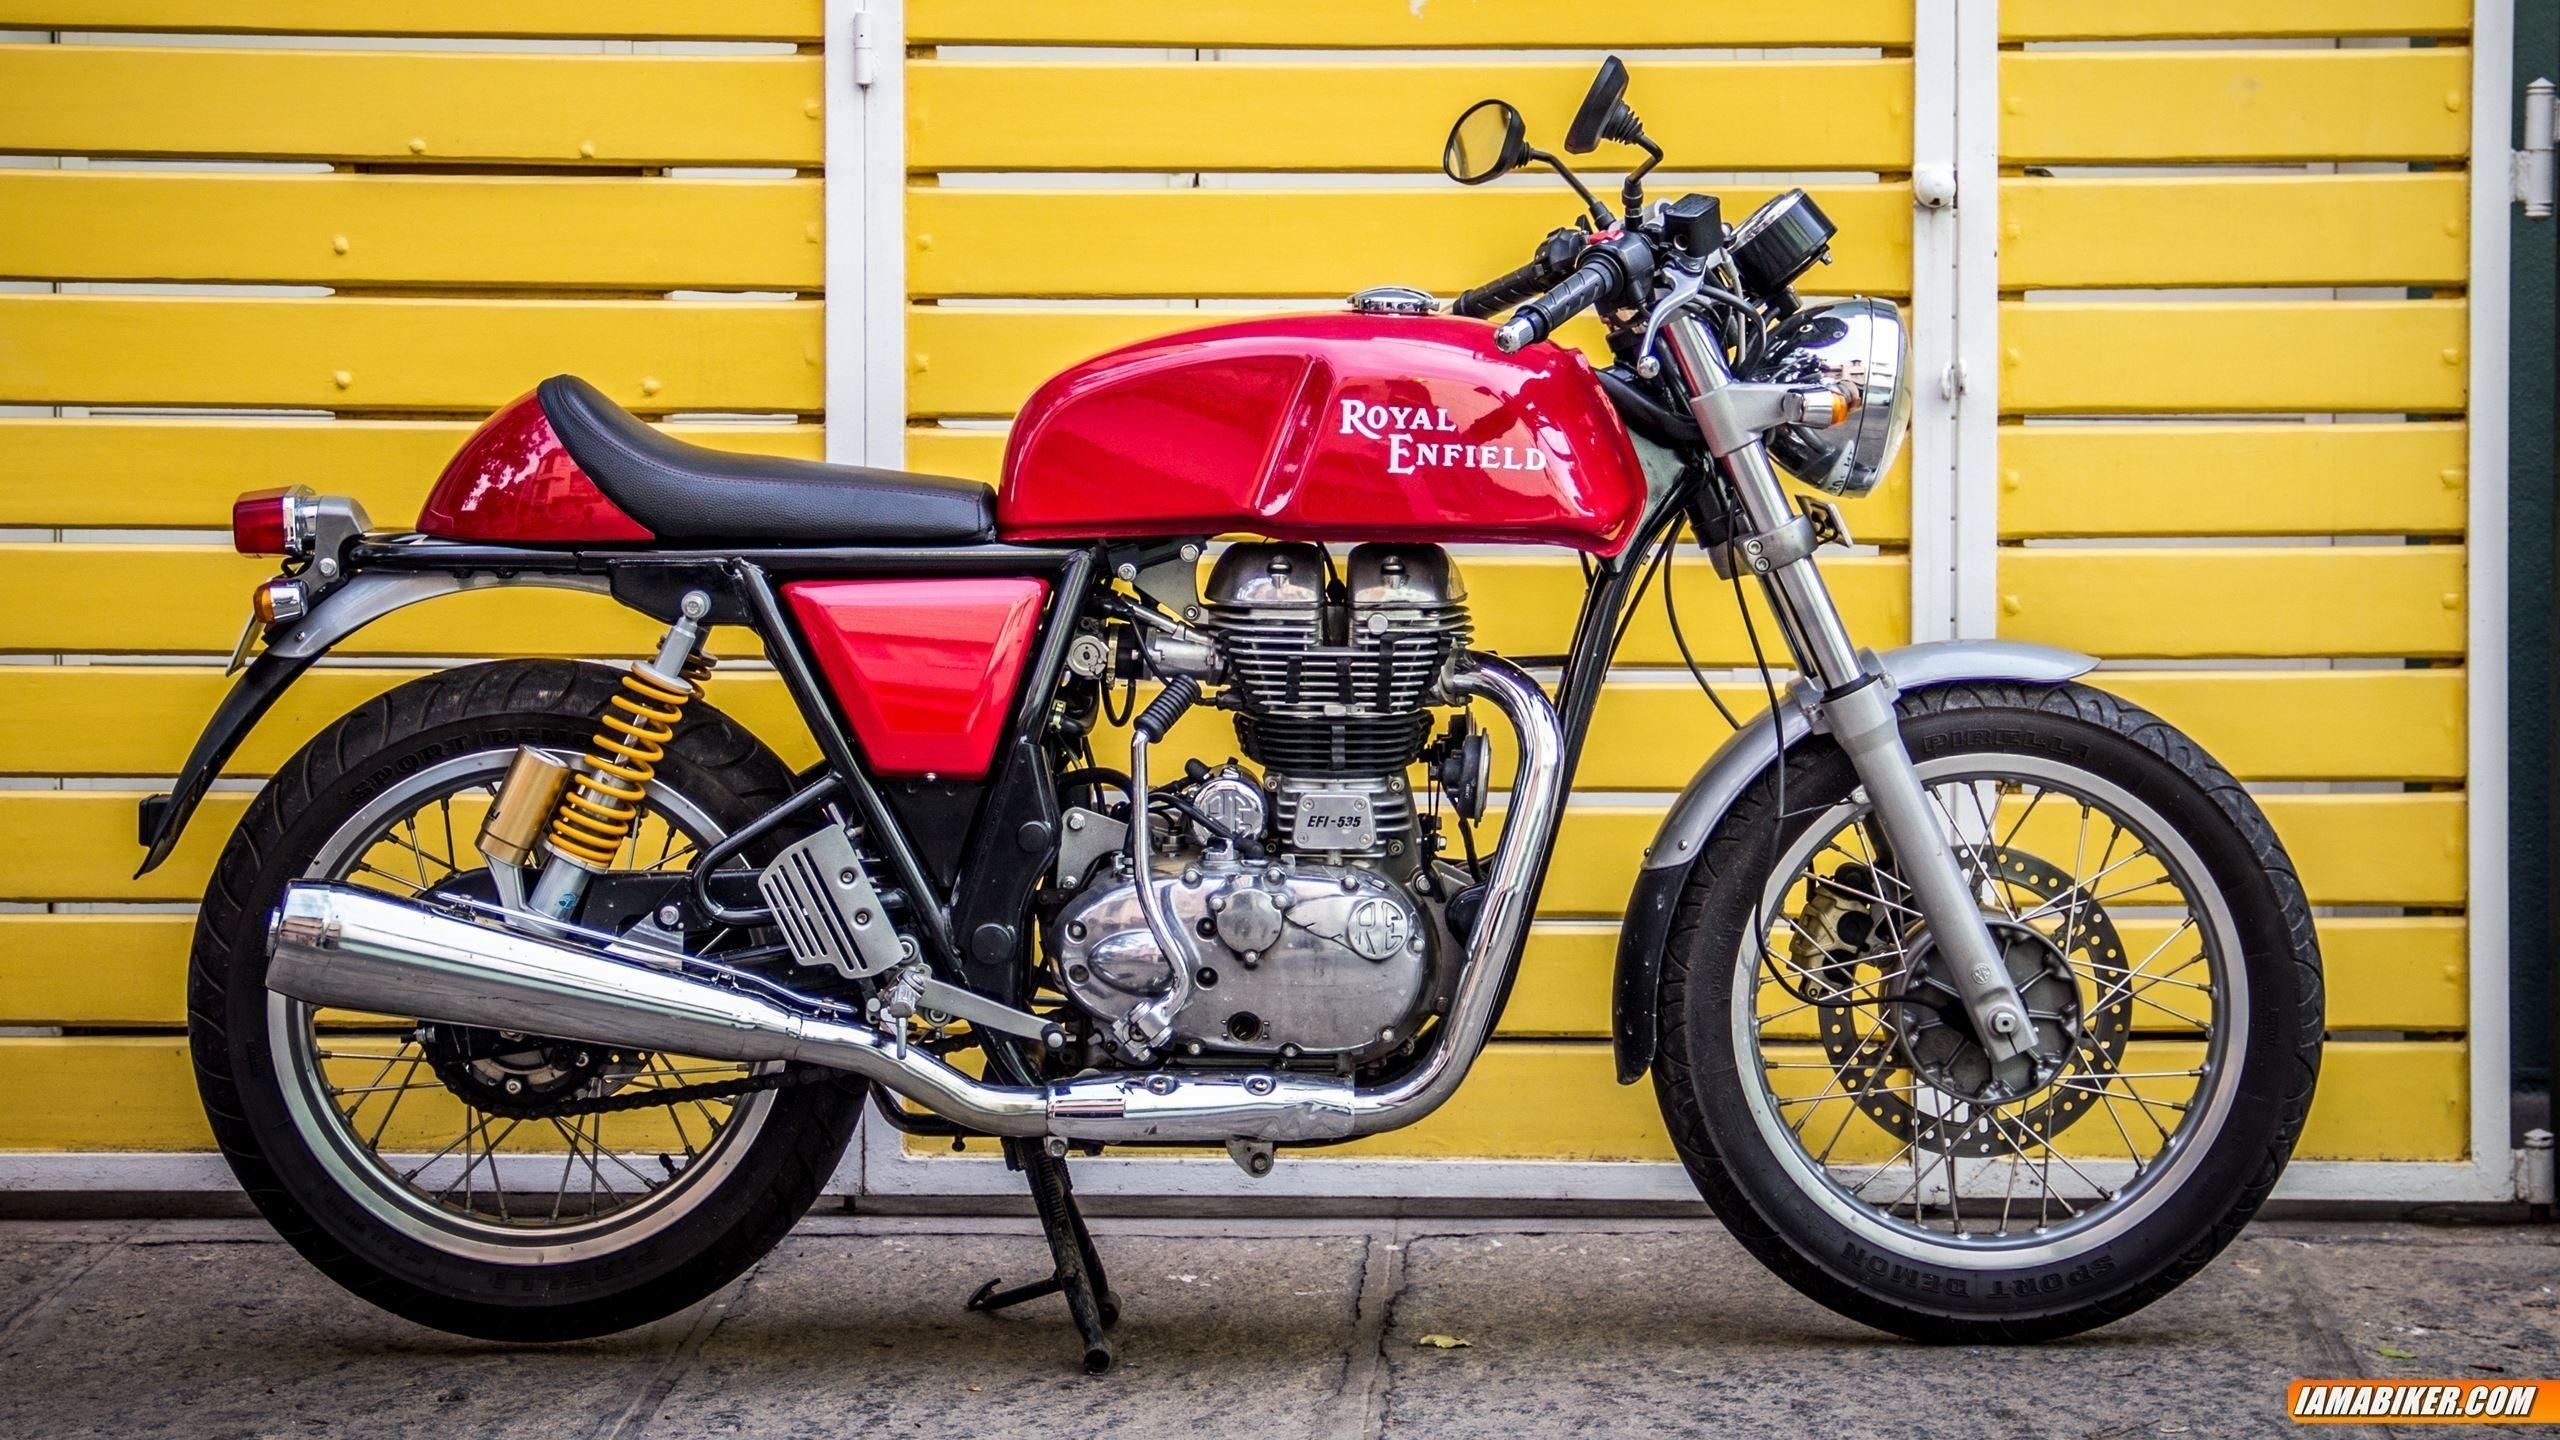 Royal Enfield Continental Gt Wallpapers Top Free Royal Enfield Continental Gt Backgrounds Wallpaperaccess